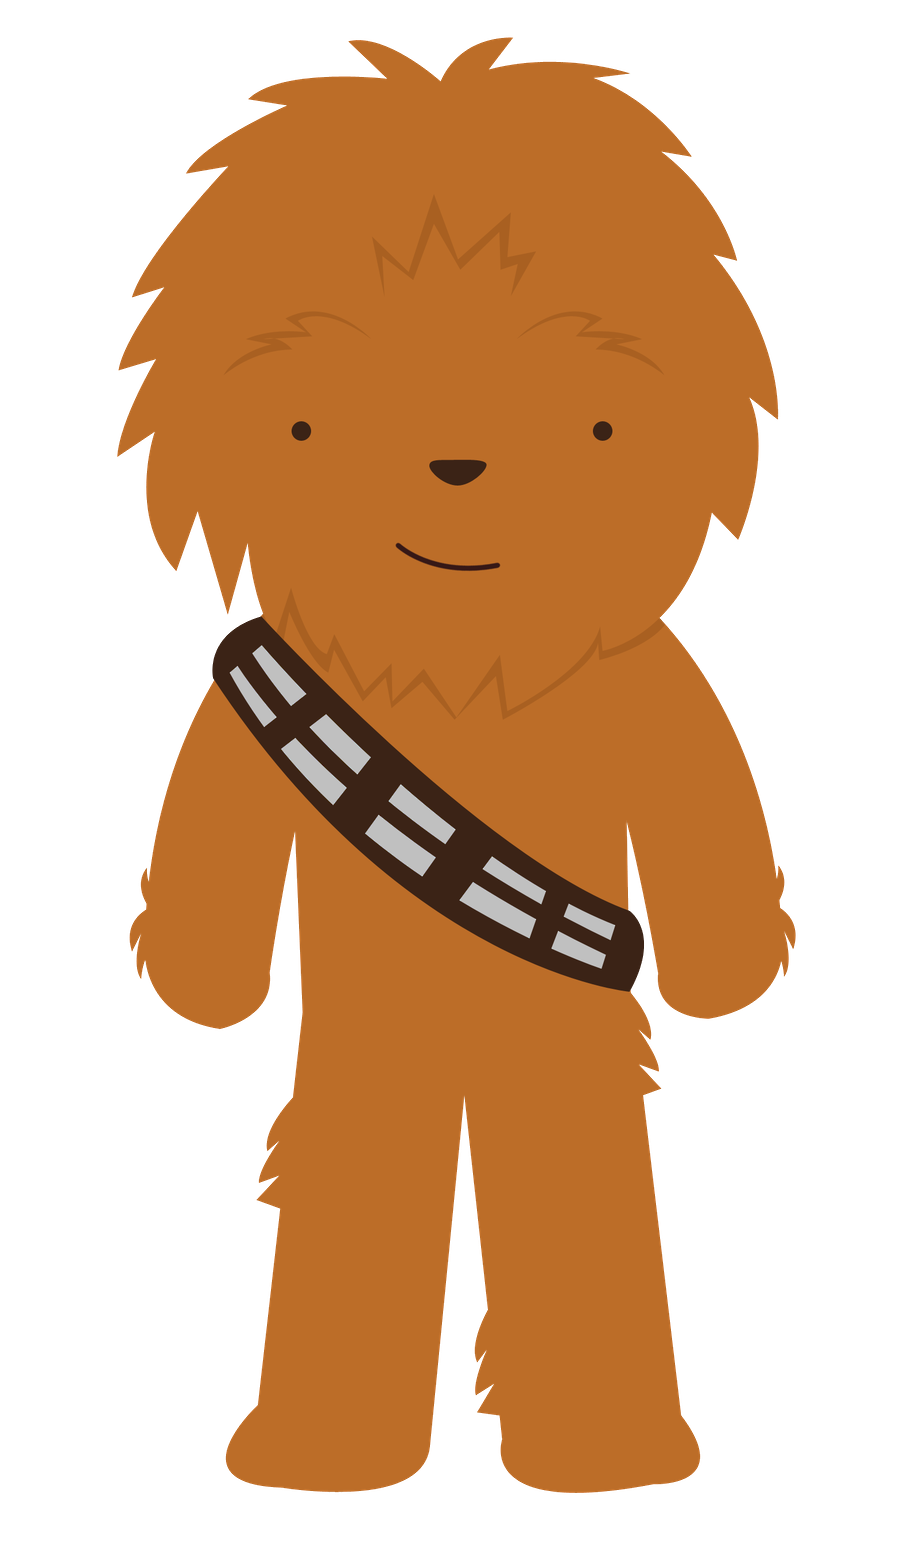 png freeuse download Star wars minus papusi. Chewbacca clipart cute.